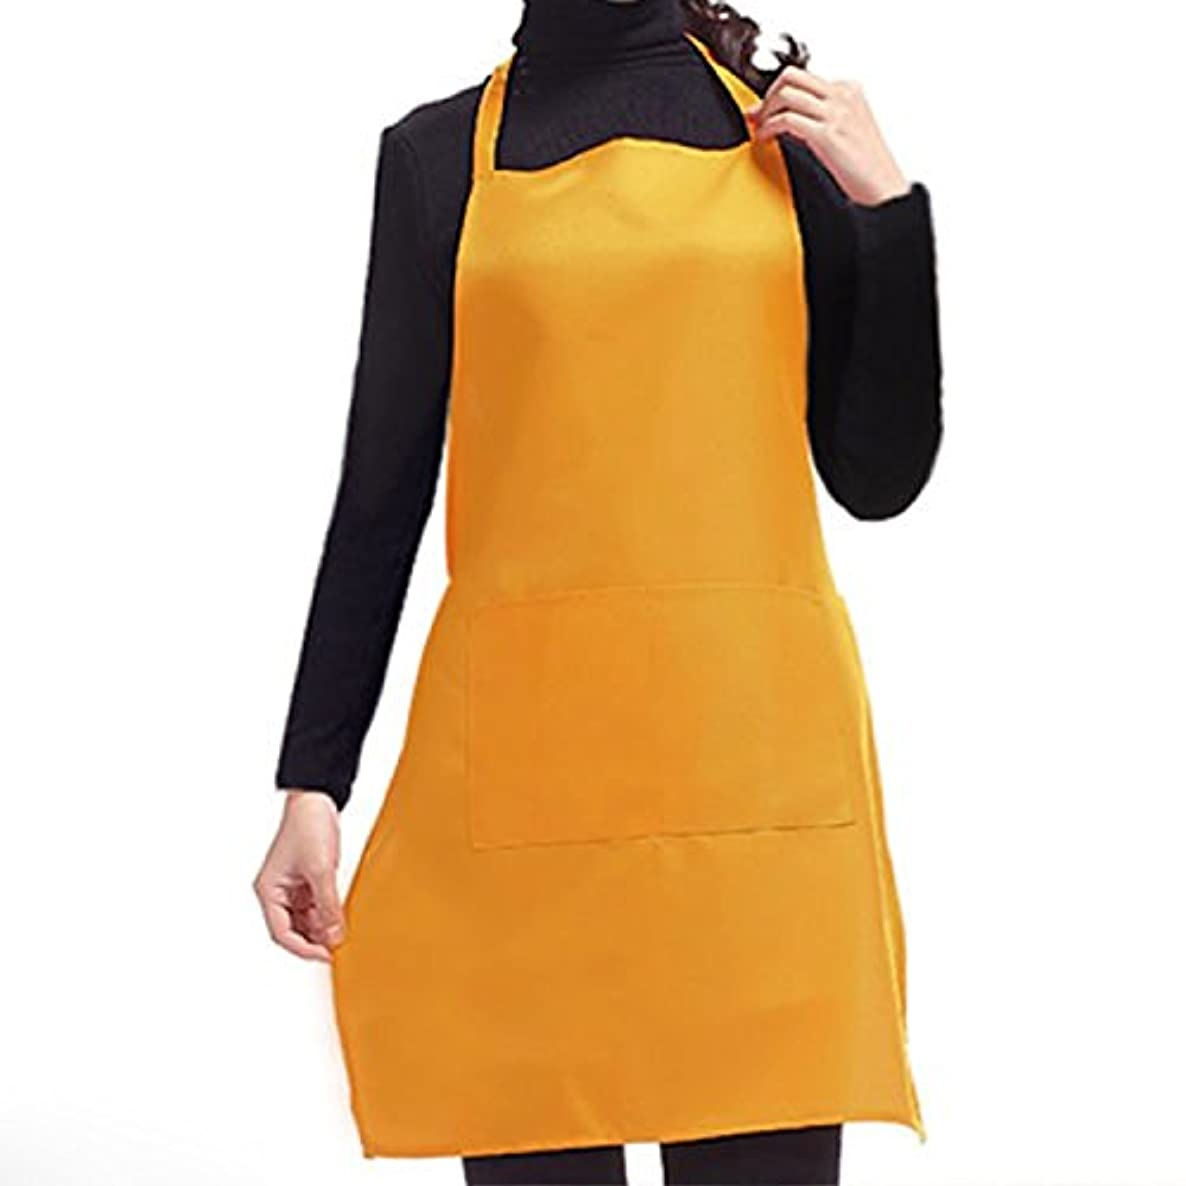 Youareking Unisex Fashion Working Chefs Kitchen Cooking Cook with Pockets Design for Husband Wife Daughters Men Ladies (yellow)